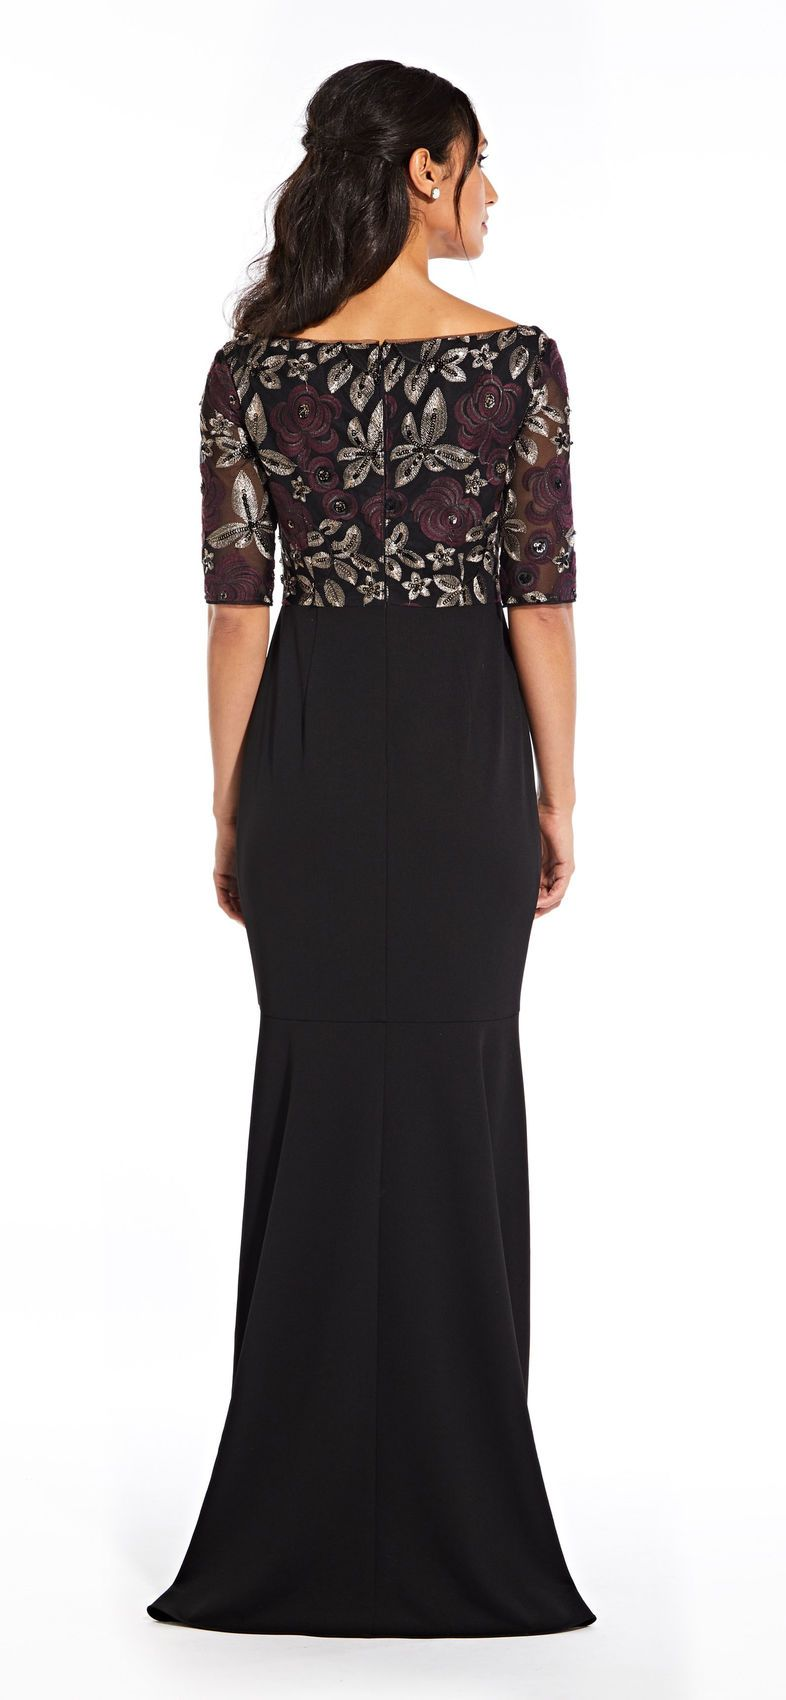 Adrianna Papell - AP1E204611 Floral V-Neck High Low Dress In Purple and Black